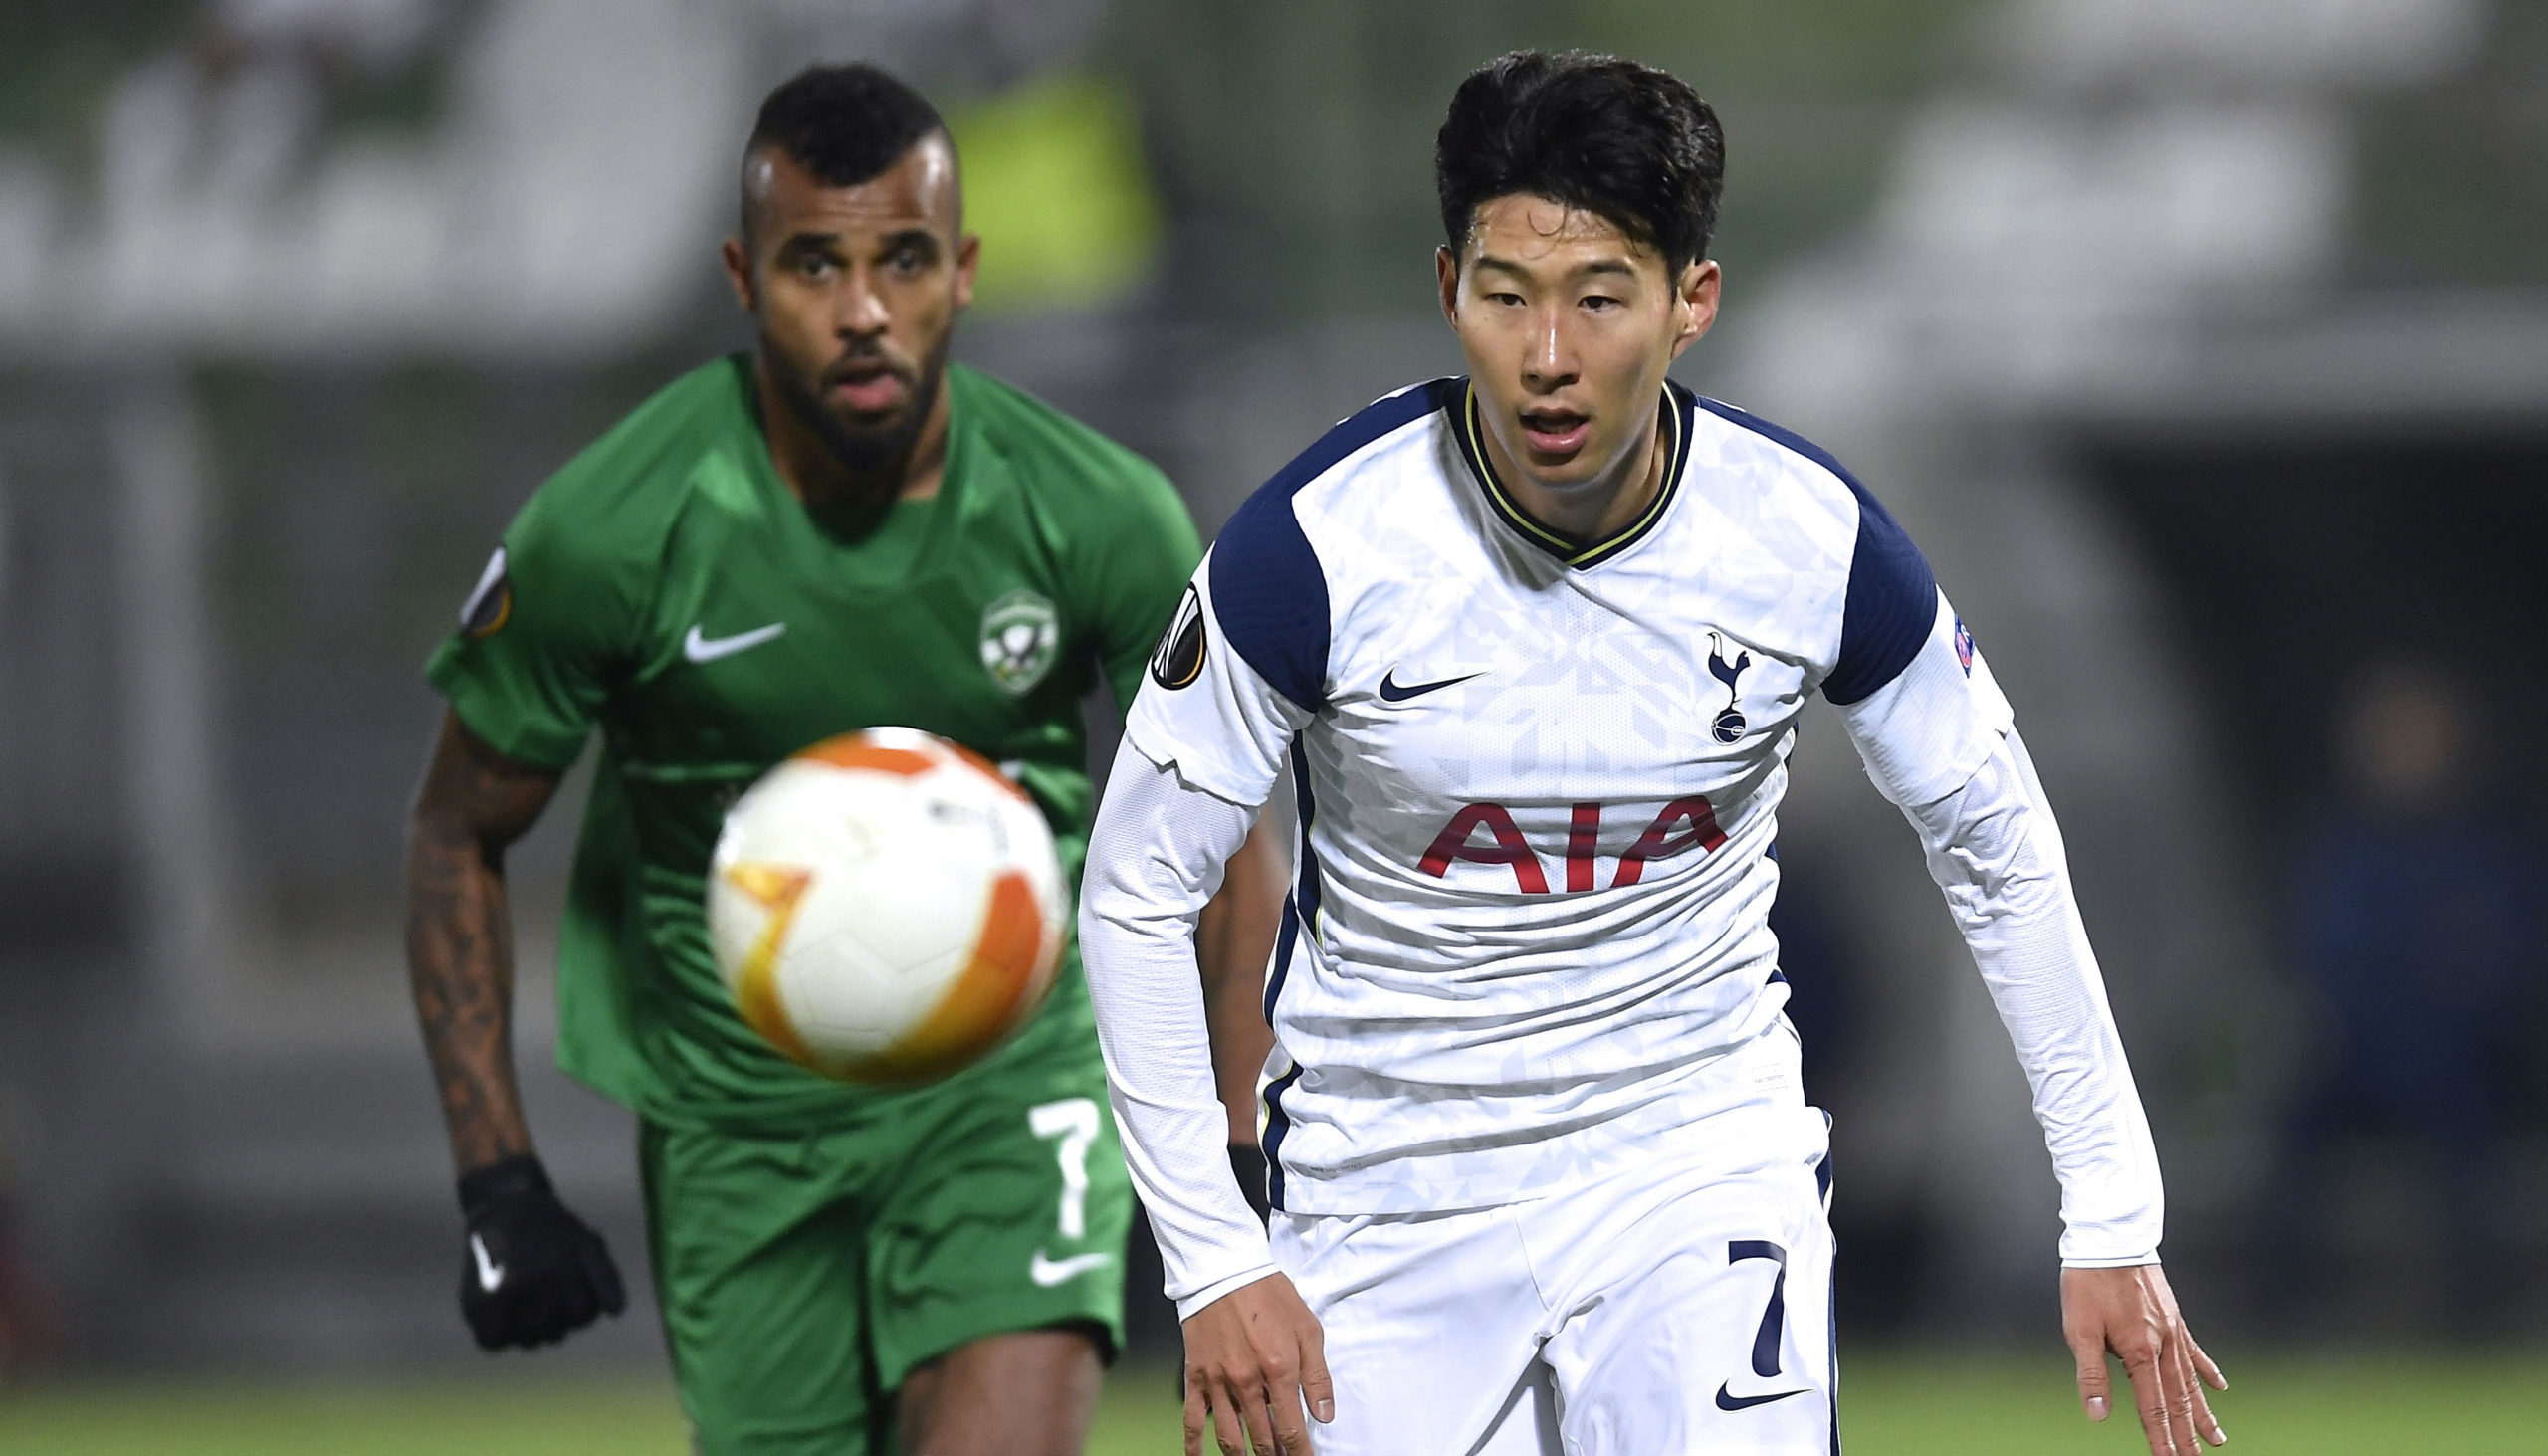 Tottenham vs Ludogorets: Fast start for Spurs